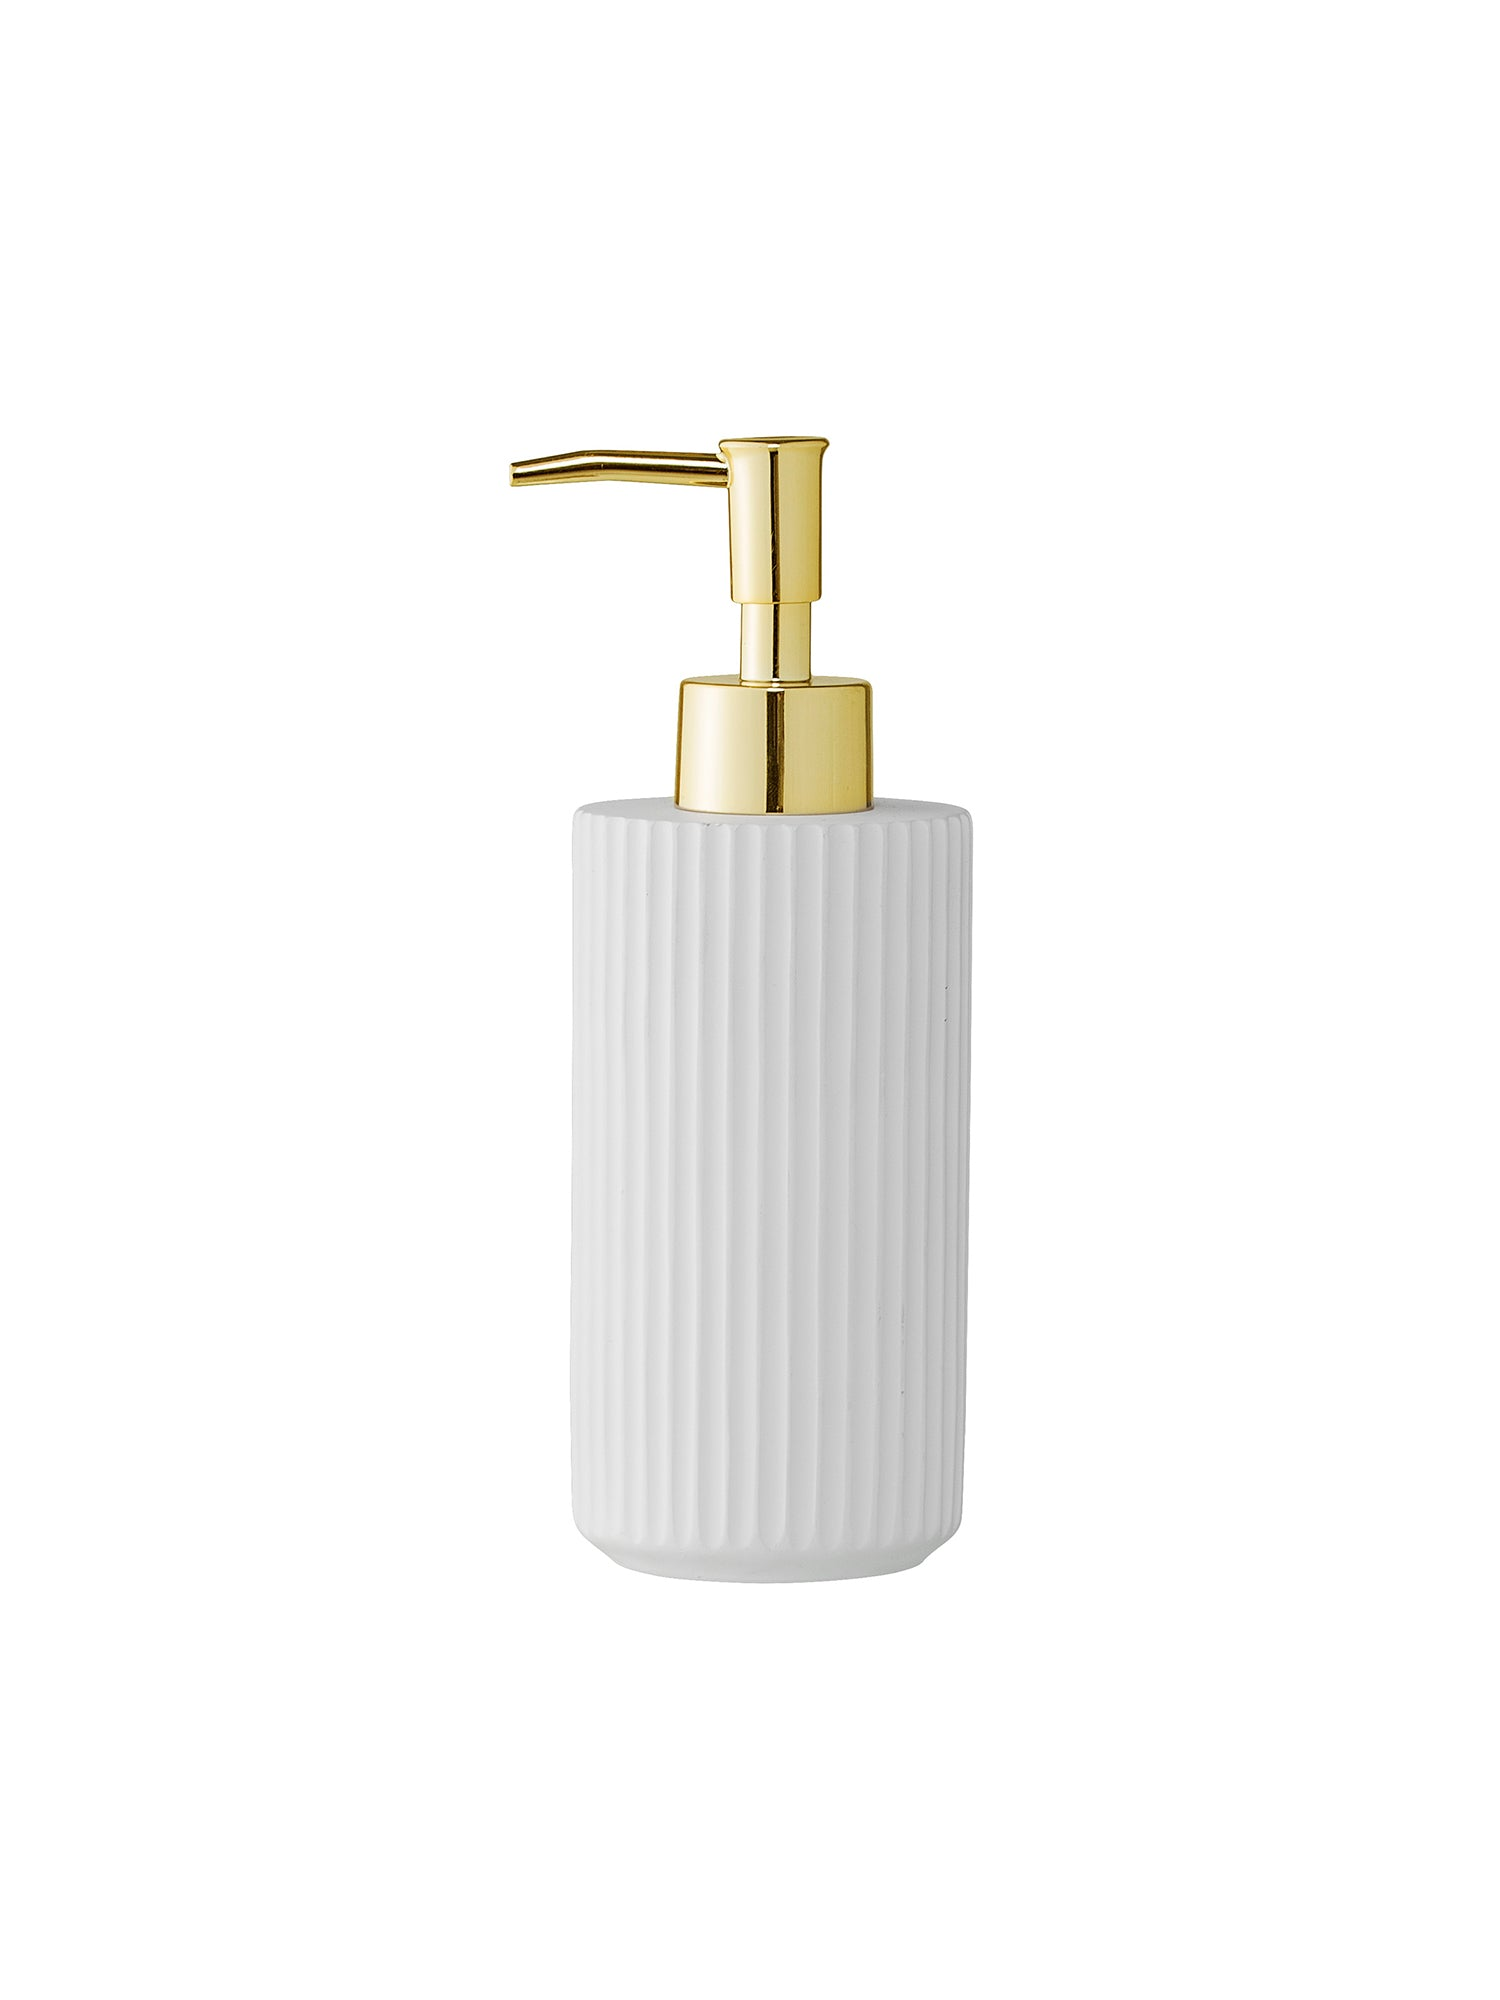 Origami Soap Dispenser #27166742